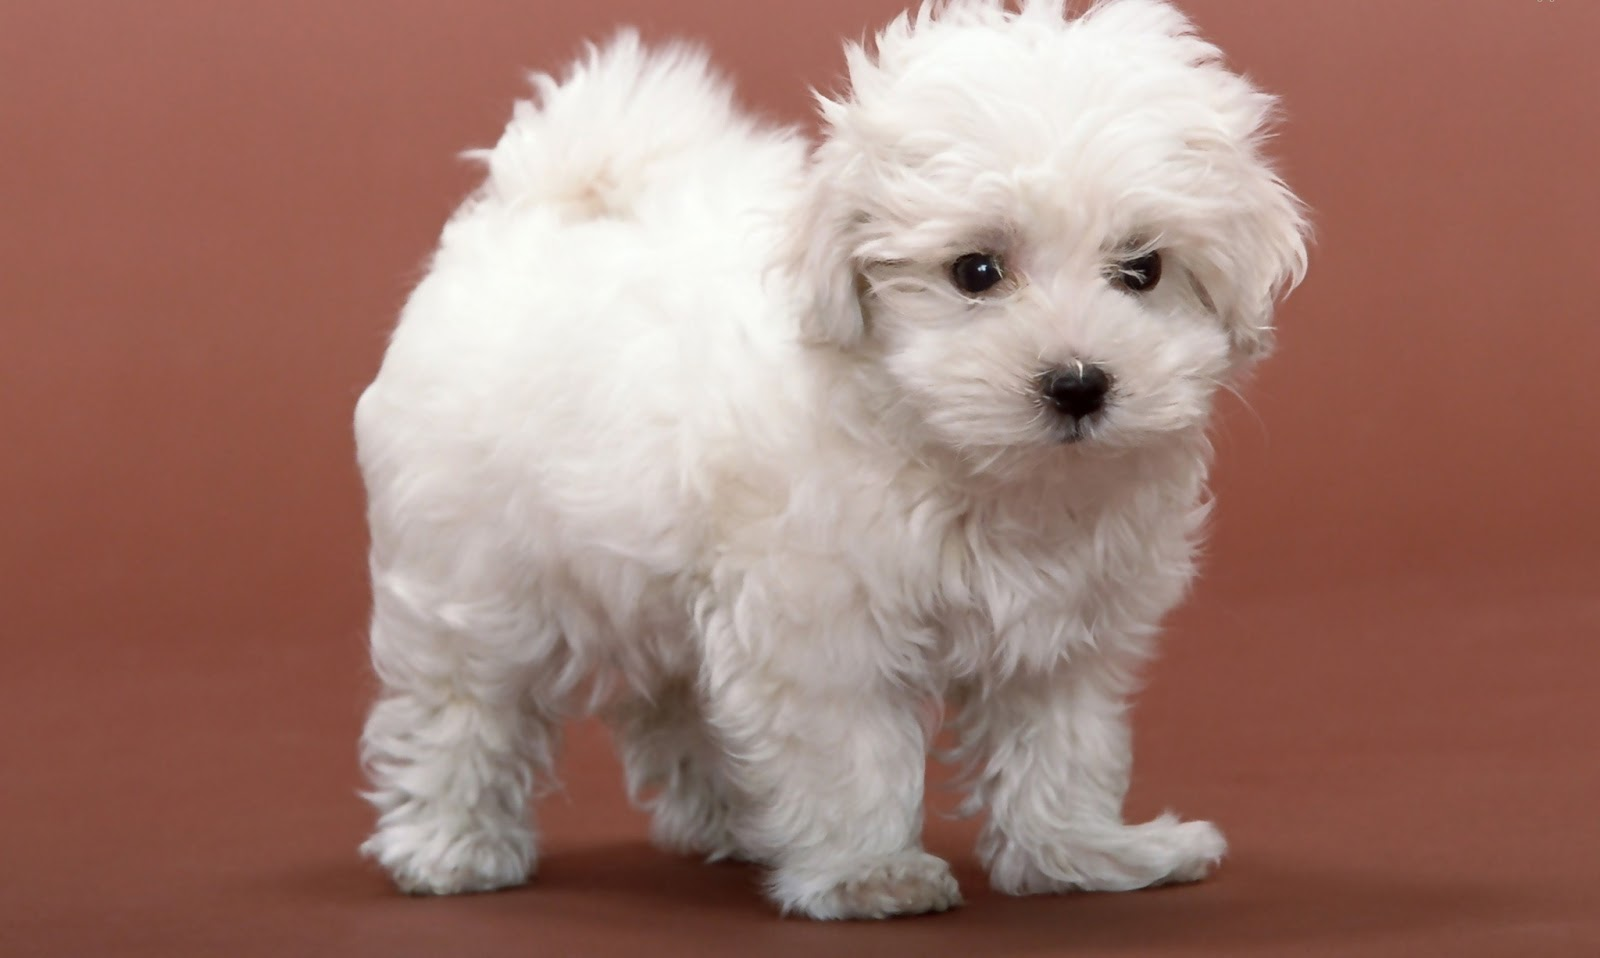 Cute Dog Wallpapers - Entertainment Only Cute White Dog Wallpaper